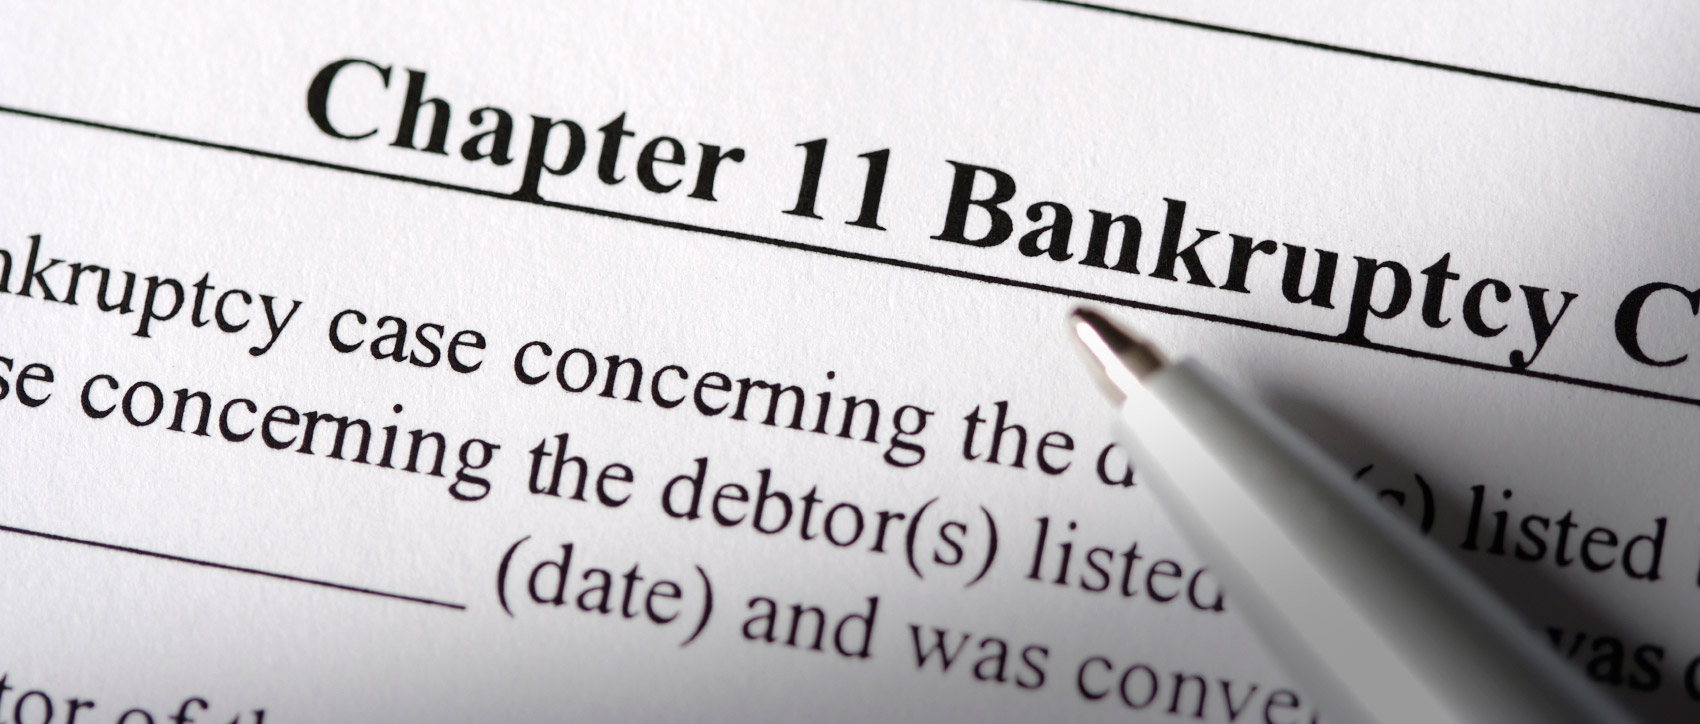 Chapter-11-Bankruptcy-Portland-Oregon.jpg